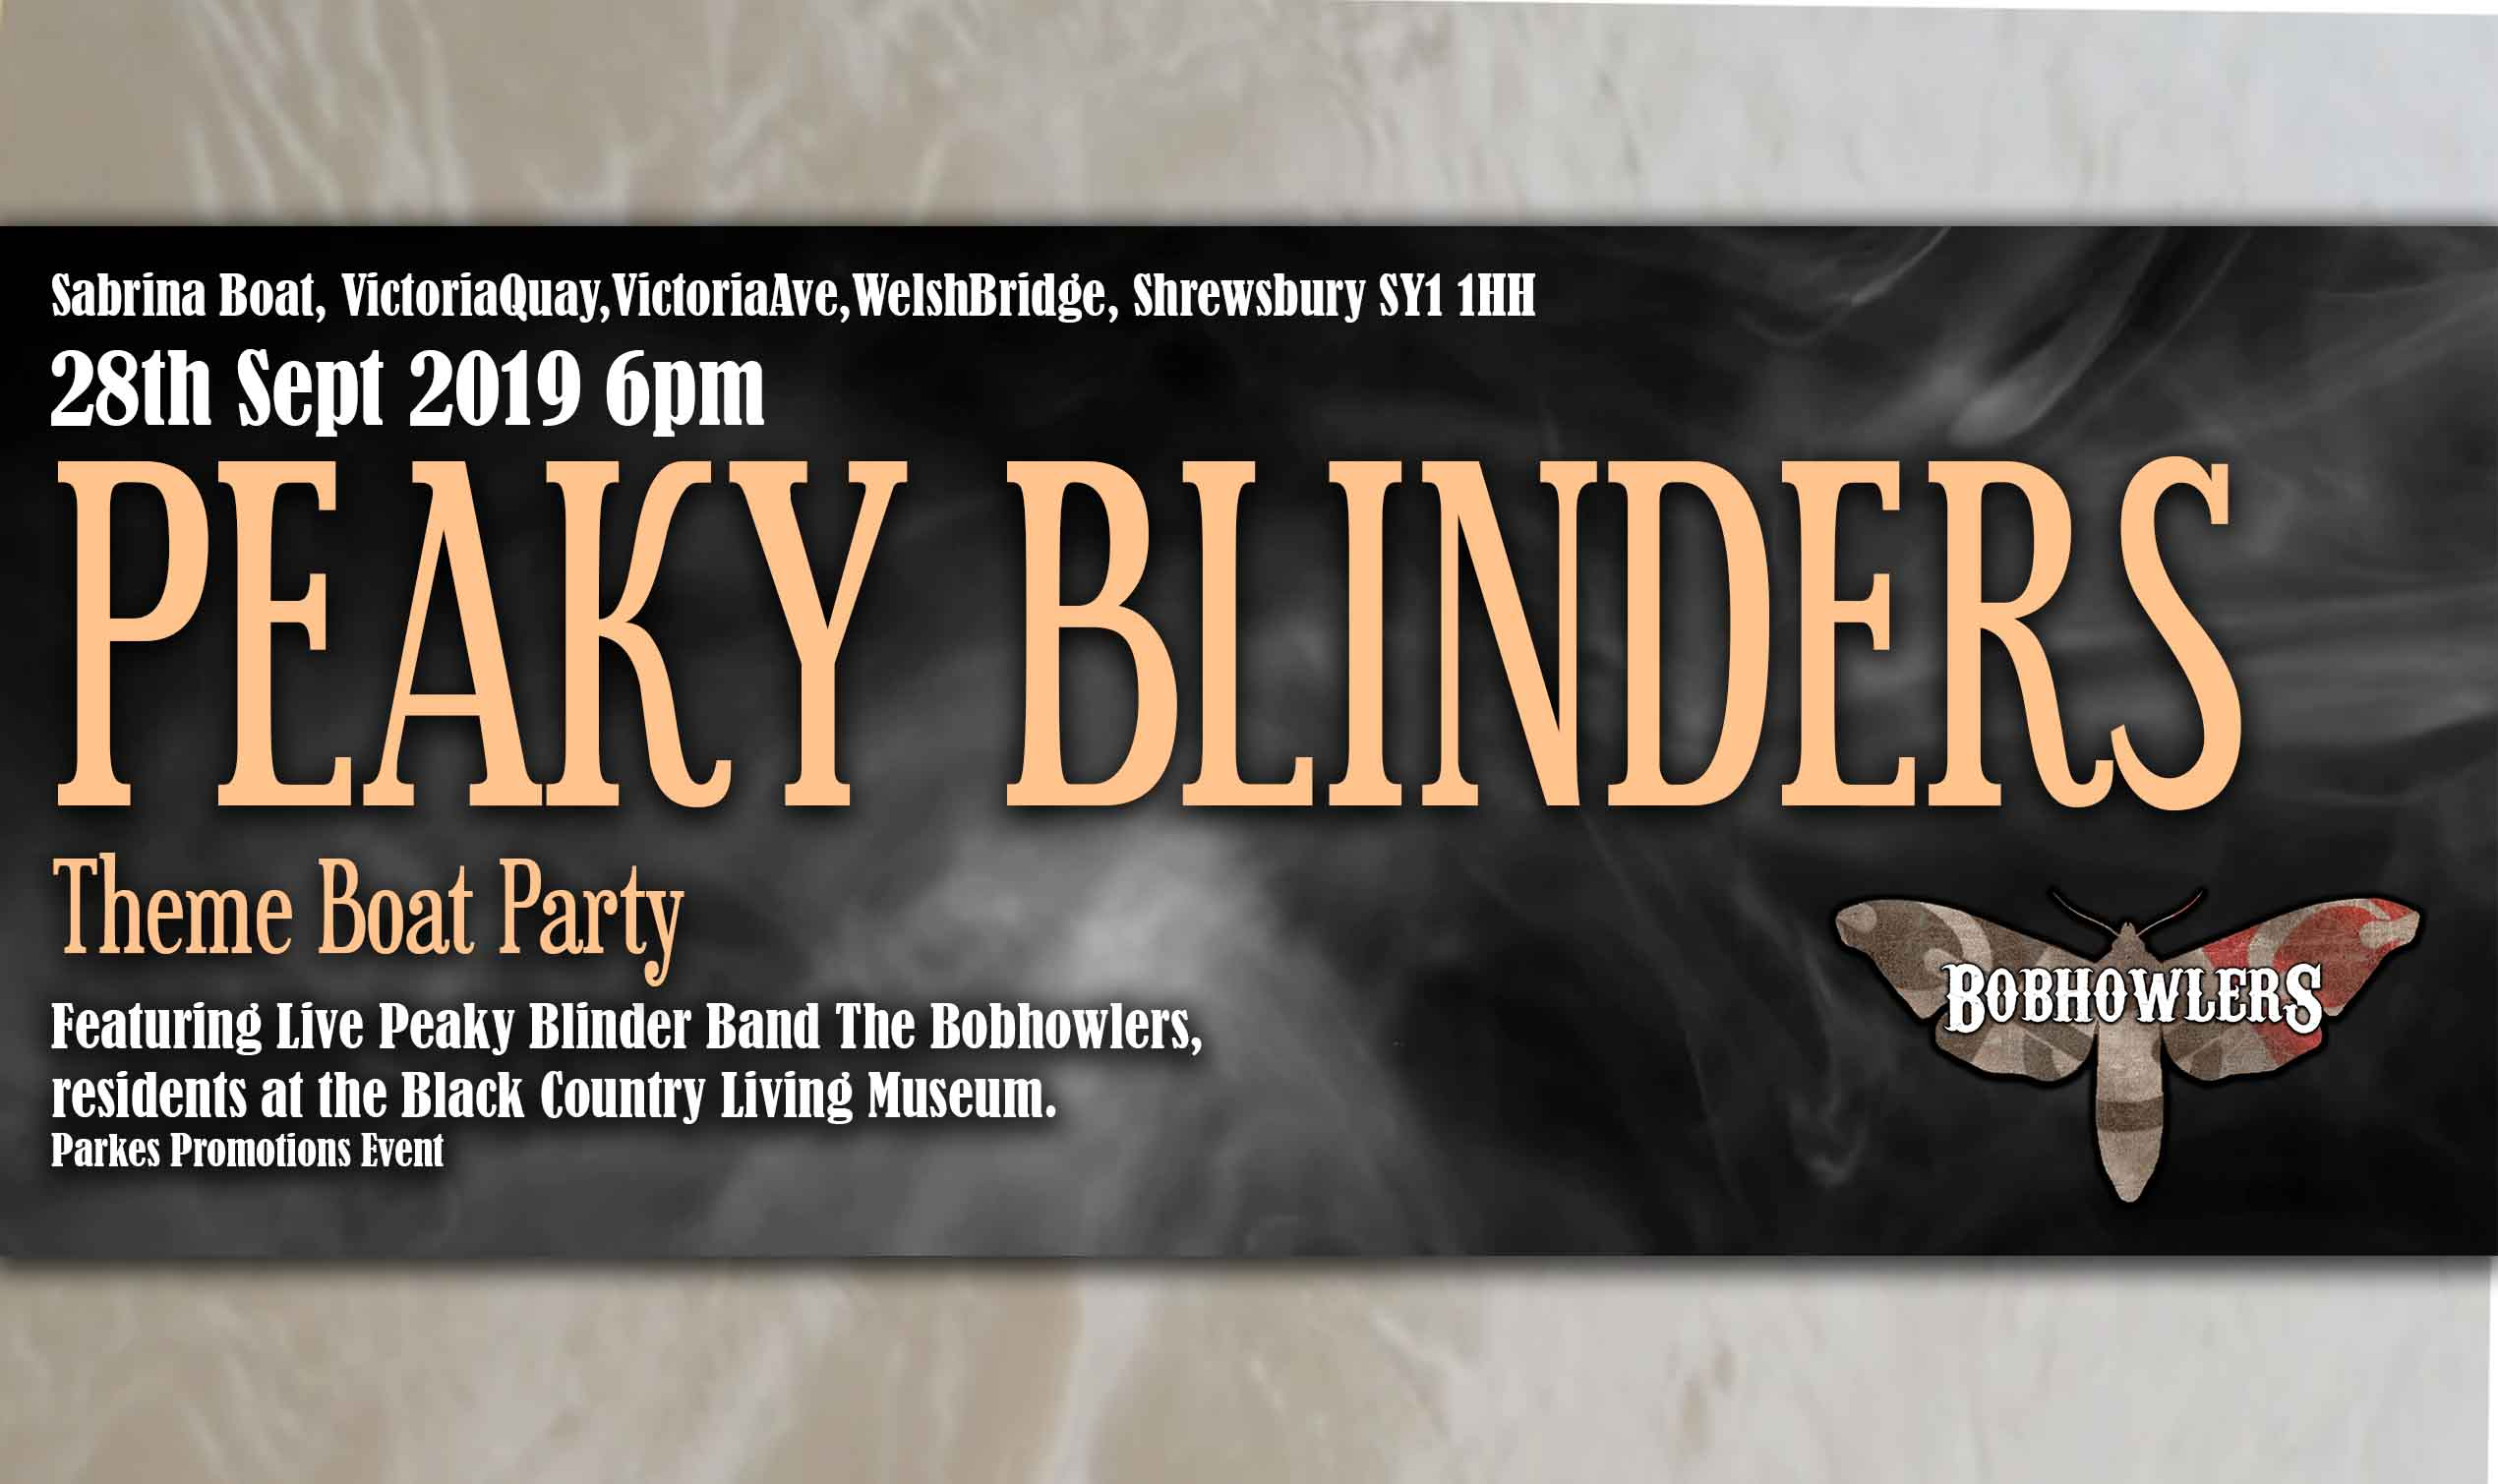 Peaky Blinders Theme Boat Party banner image